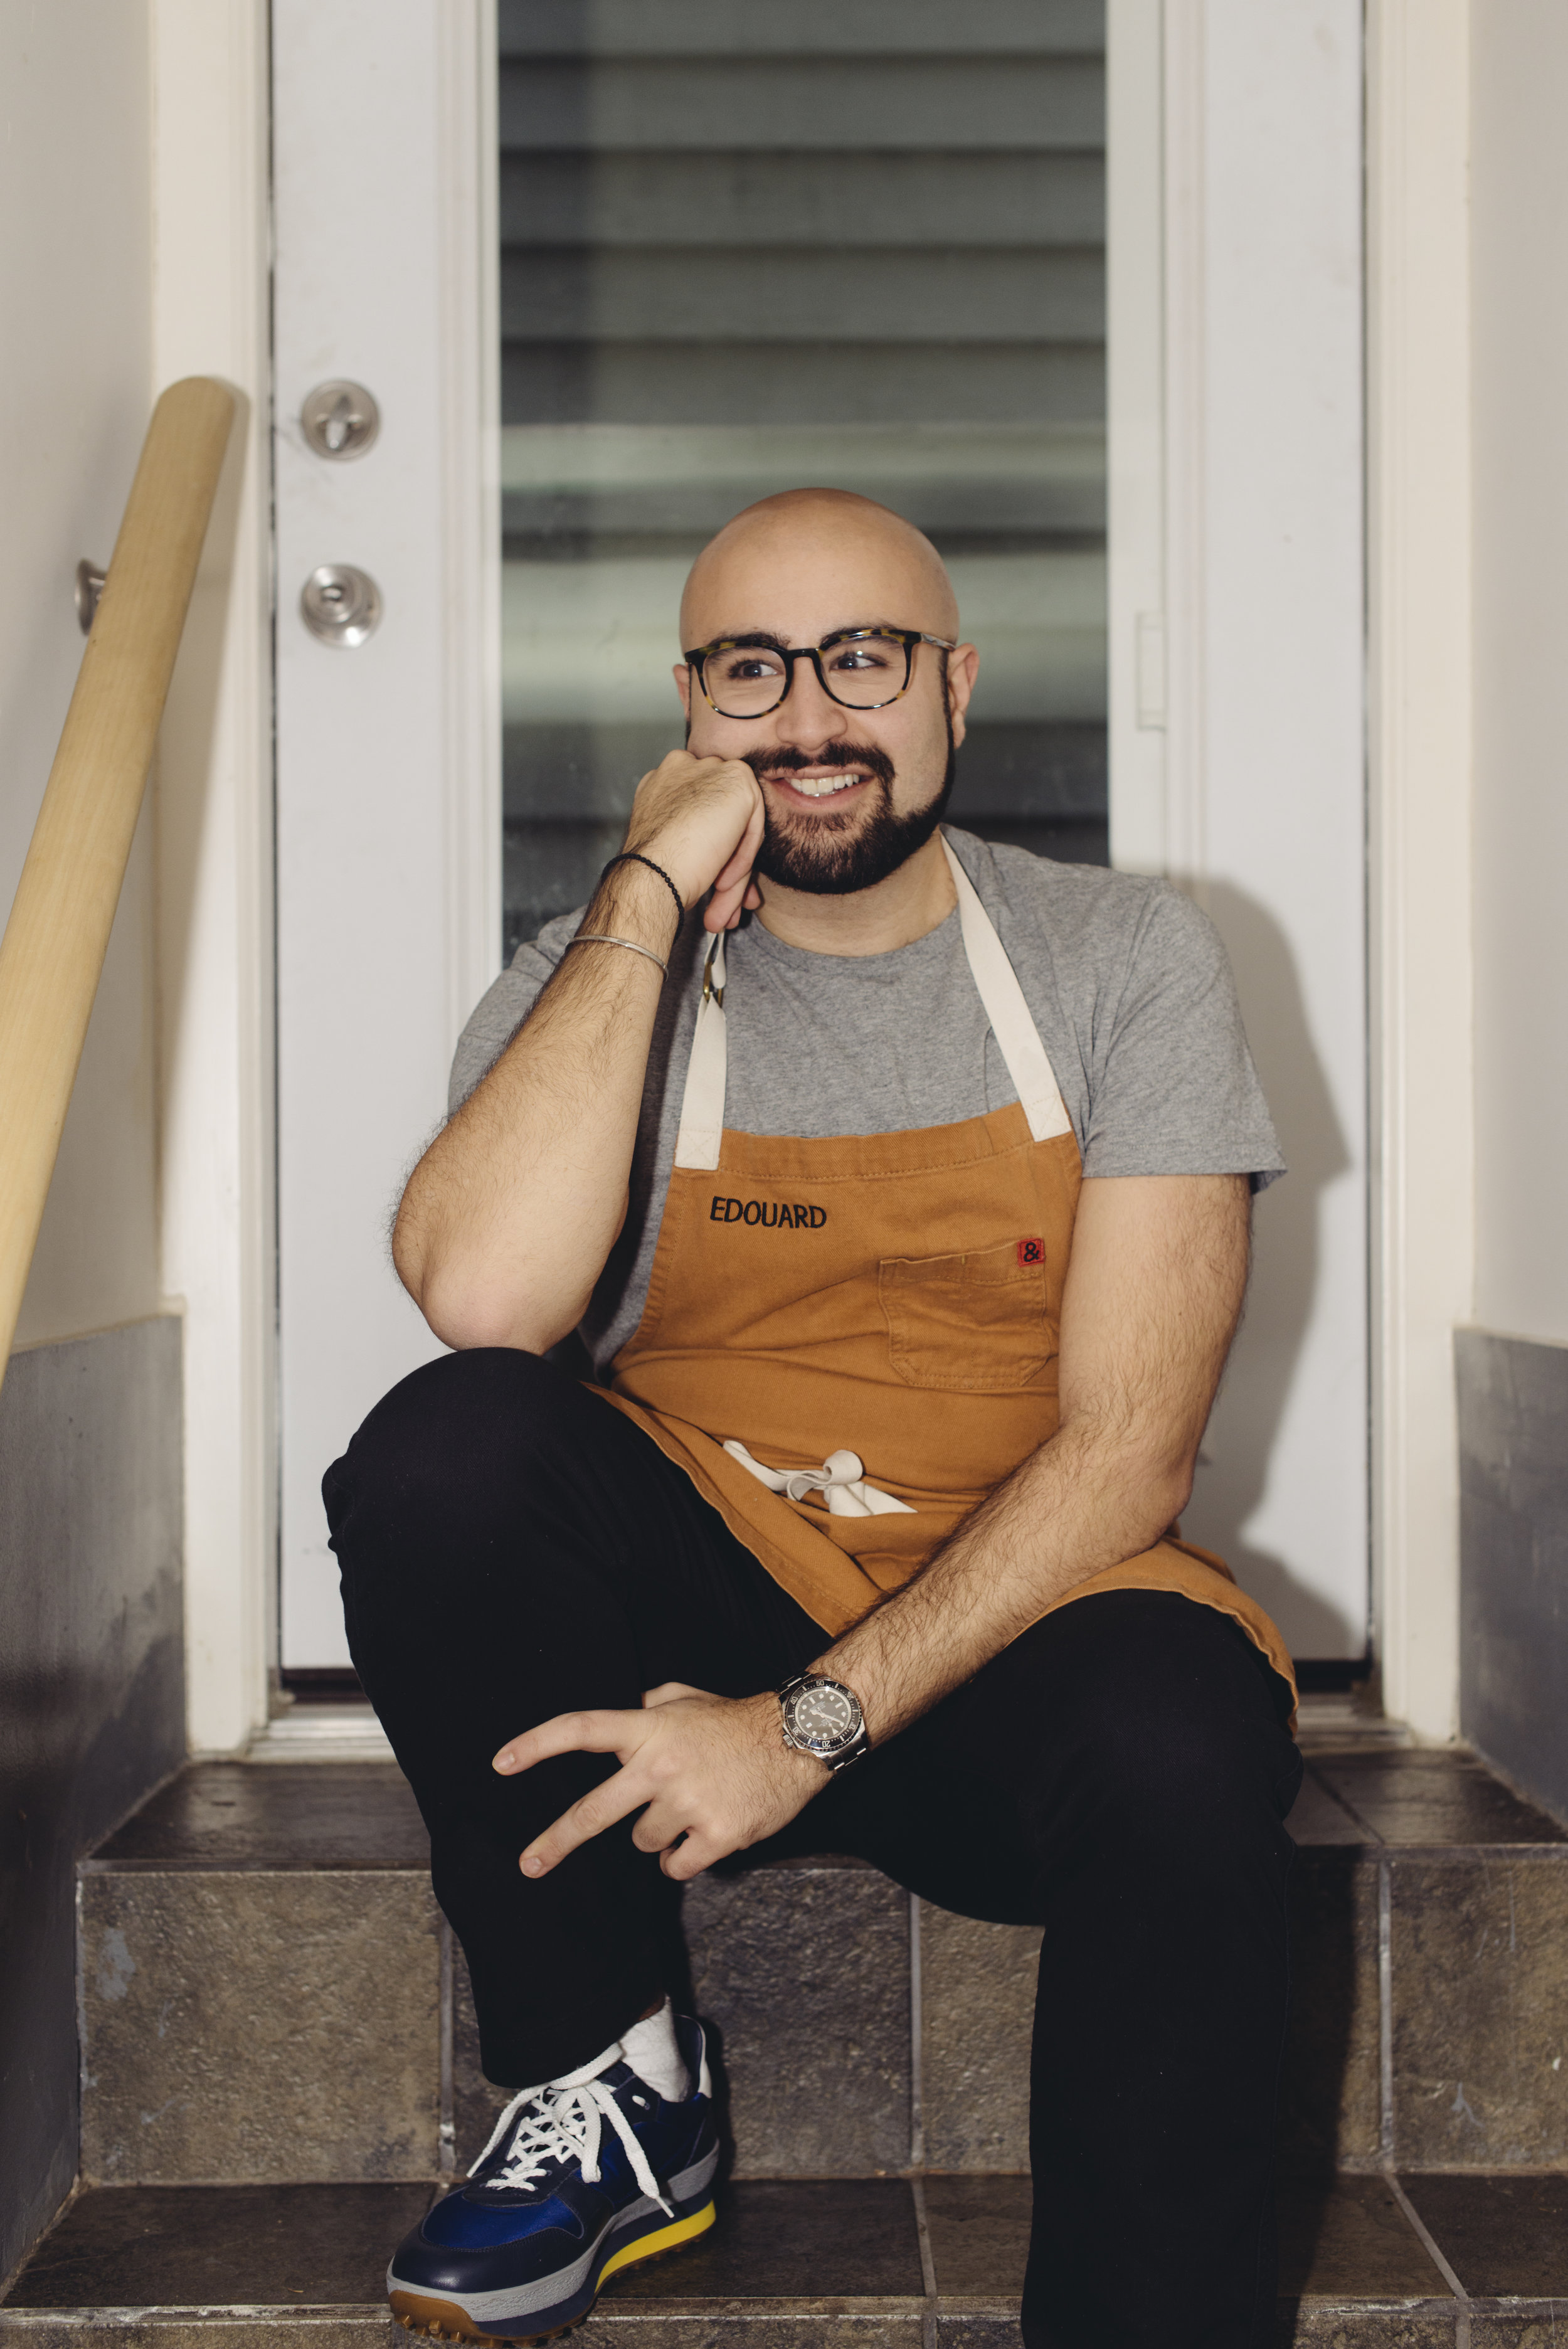 Gay Lebanese chef Edouard Massih celebrates equality and diversity - YAS Magazine